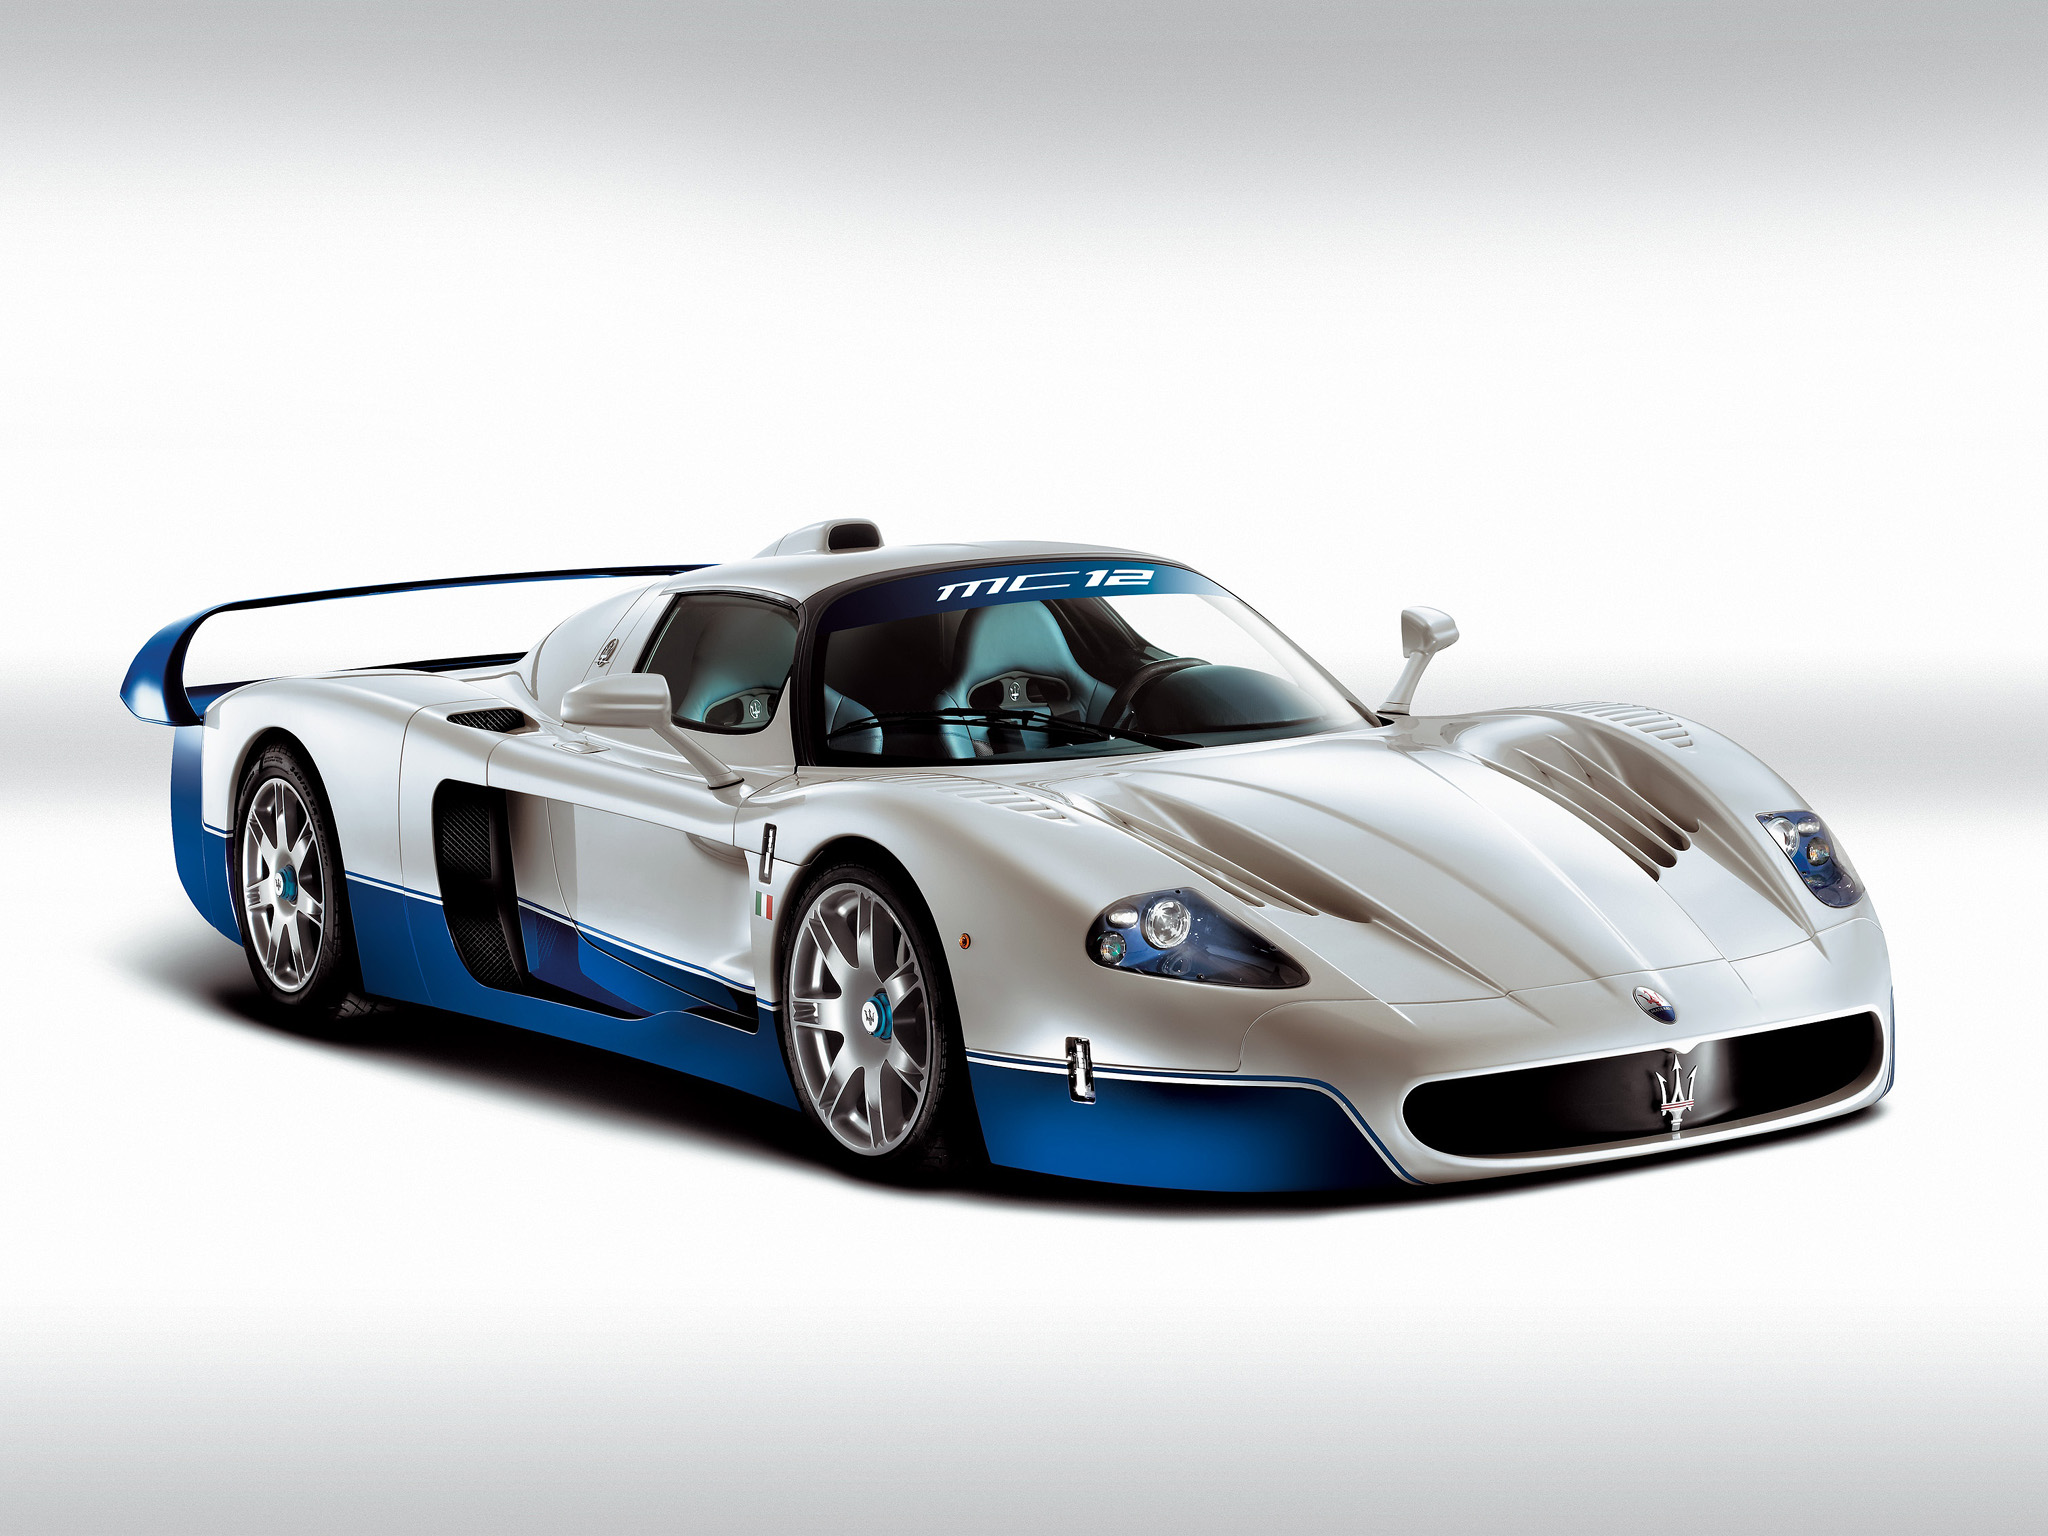 2004 - 2005 Maserati MC12 | Top Speed